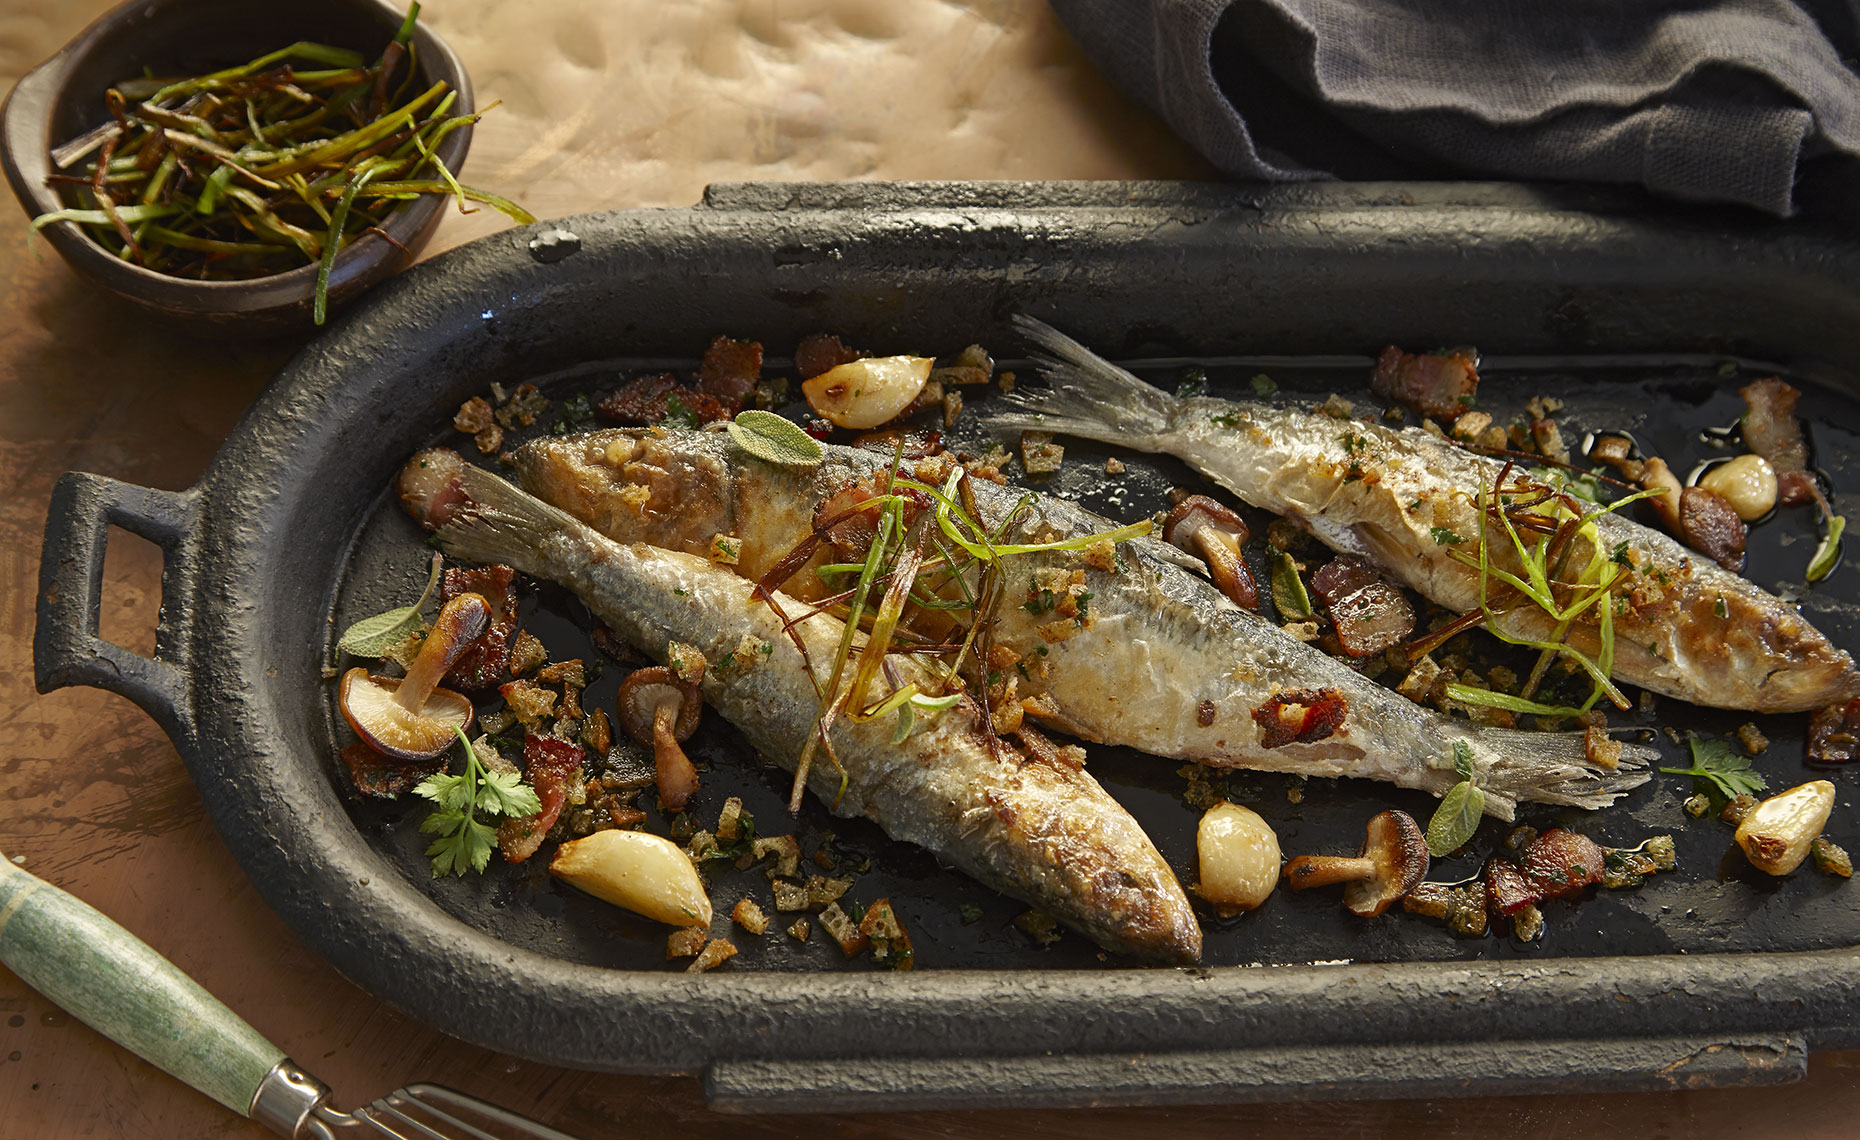 Food Photographer, Seafood Photography | Pohuski Studios,  Grilled Sardines